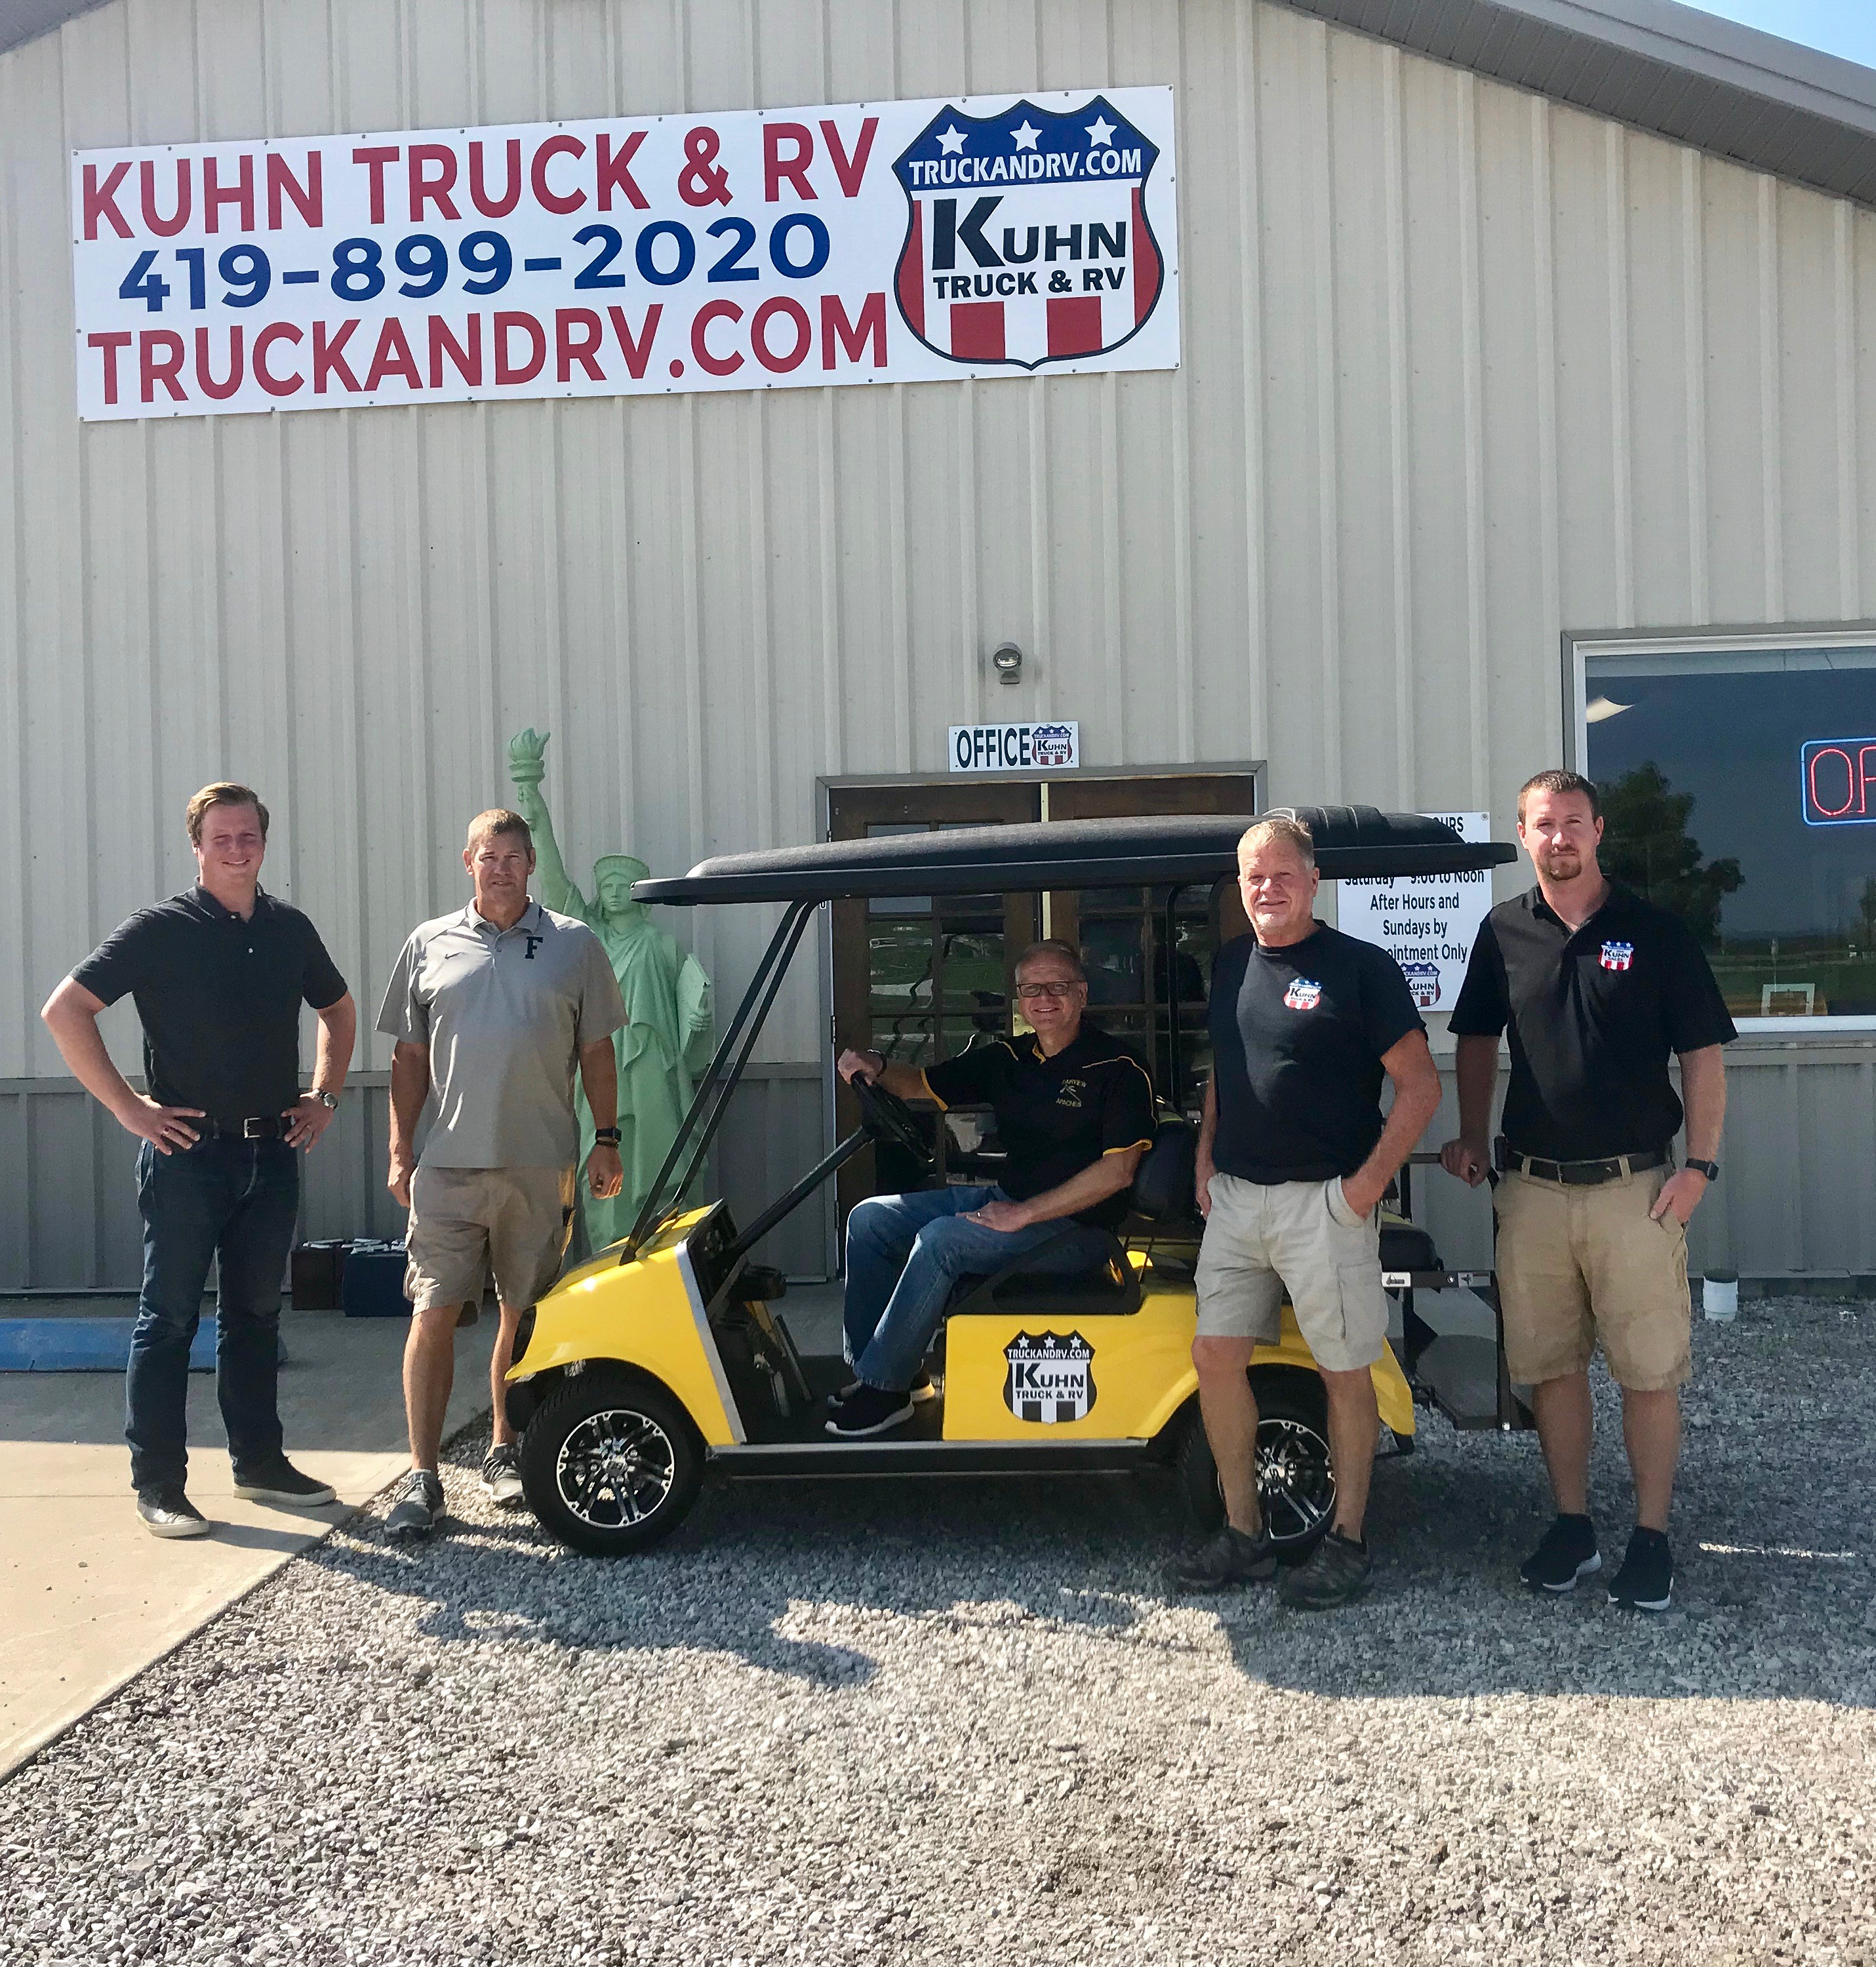 Kuhn Truck and RV donates golf cart to Fairview Athletics